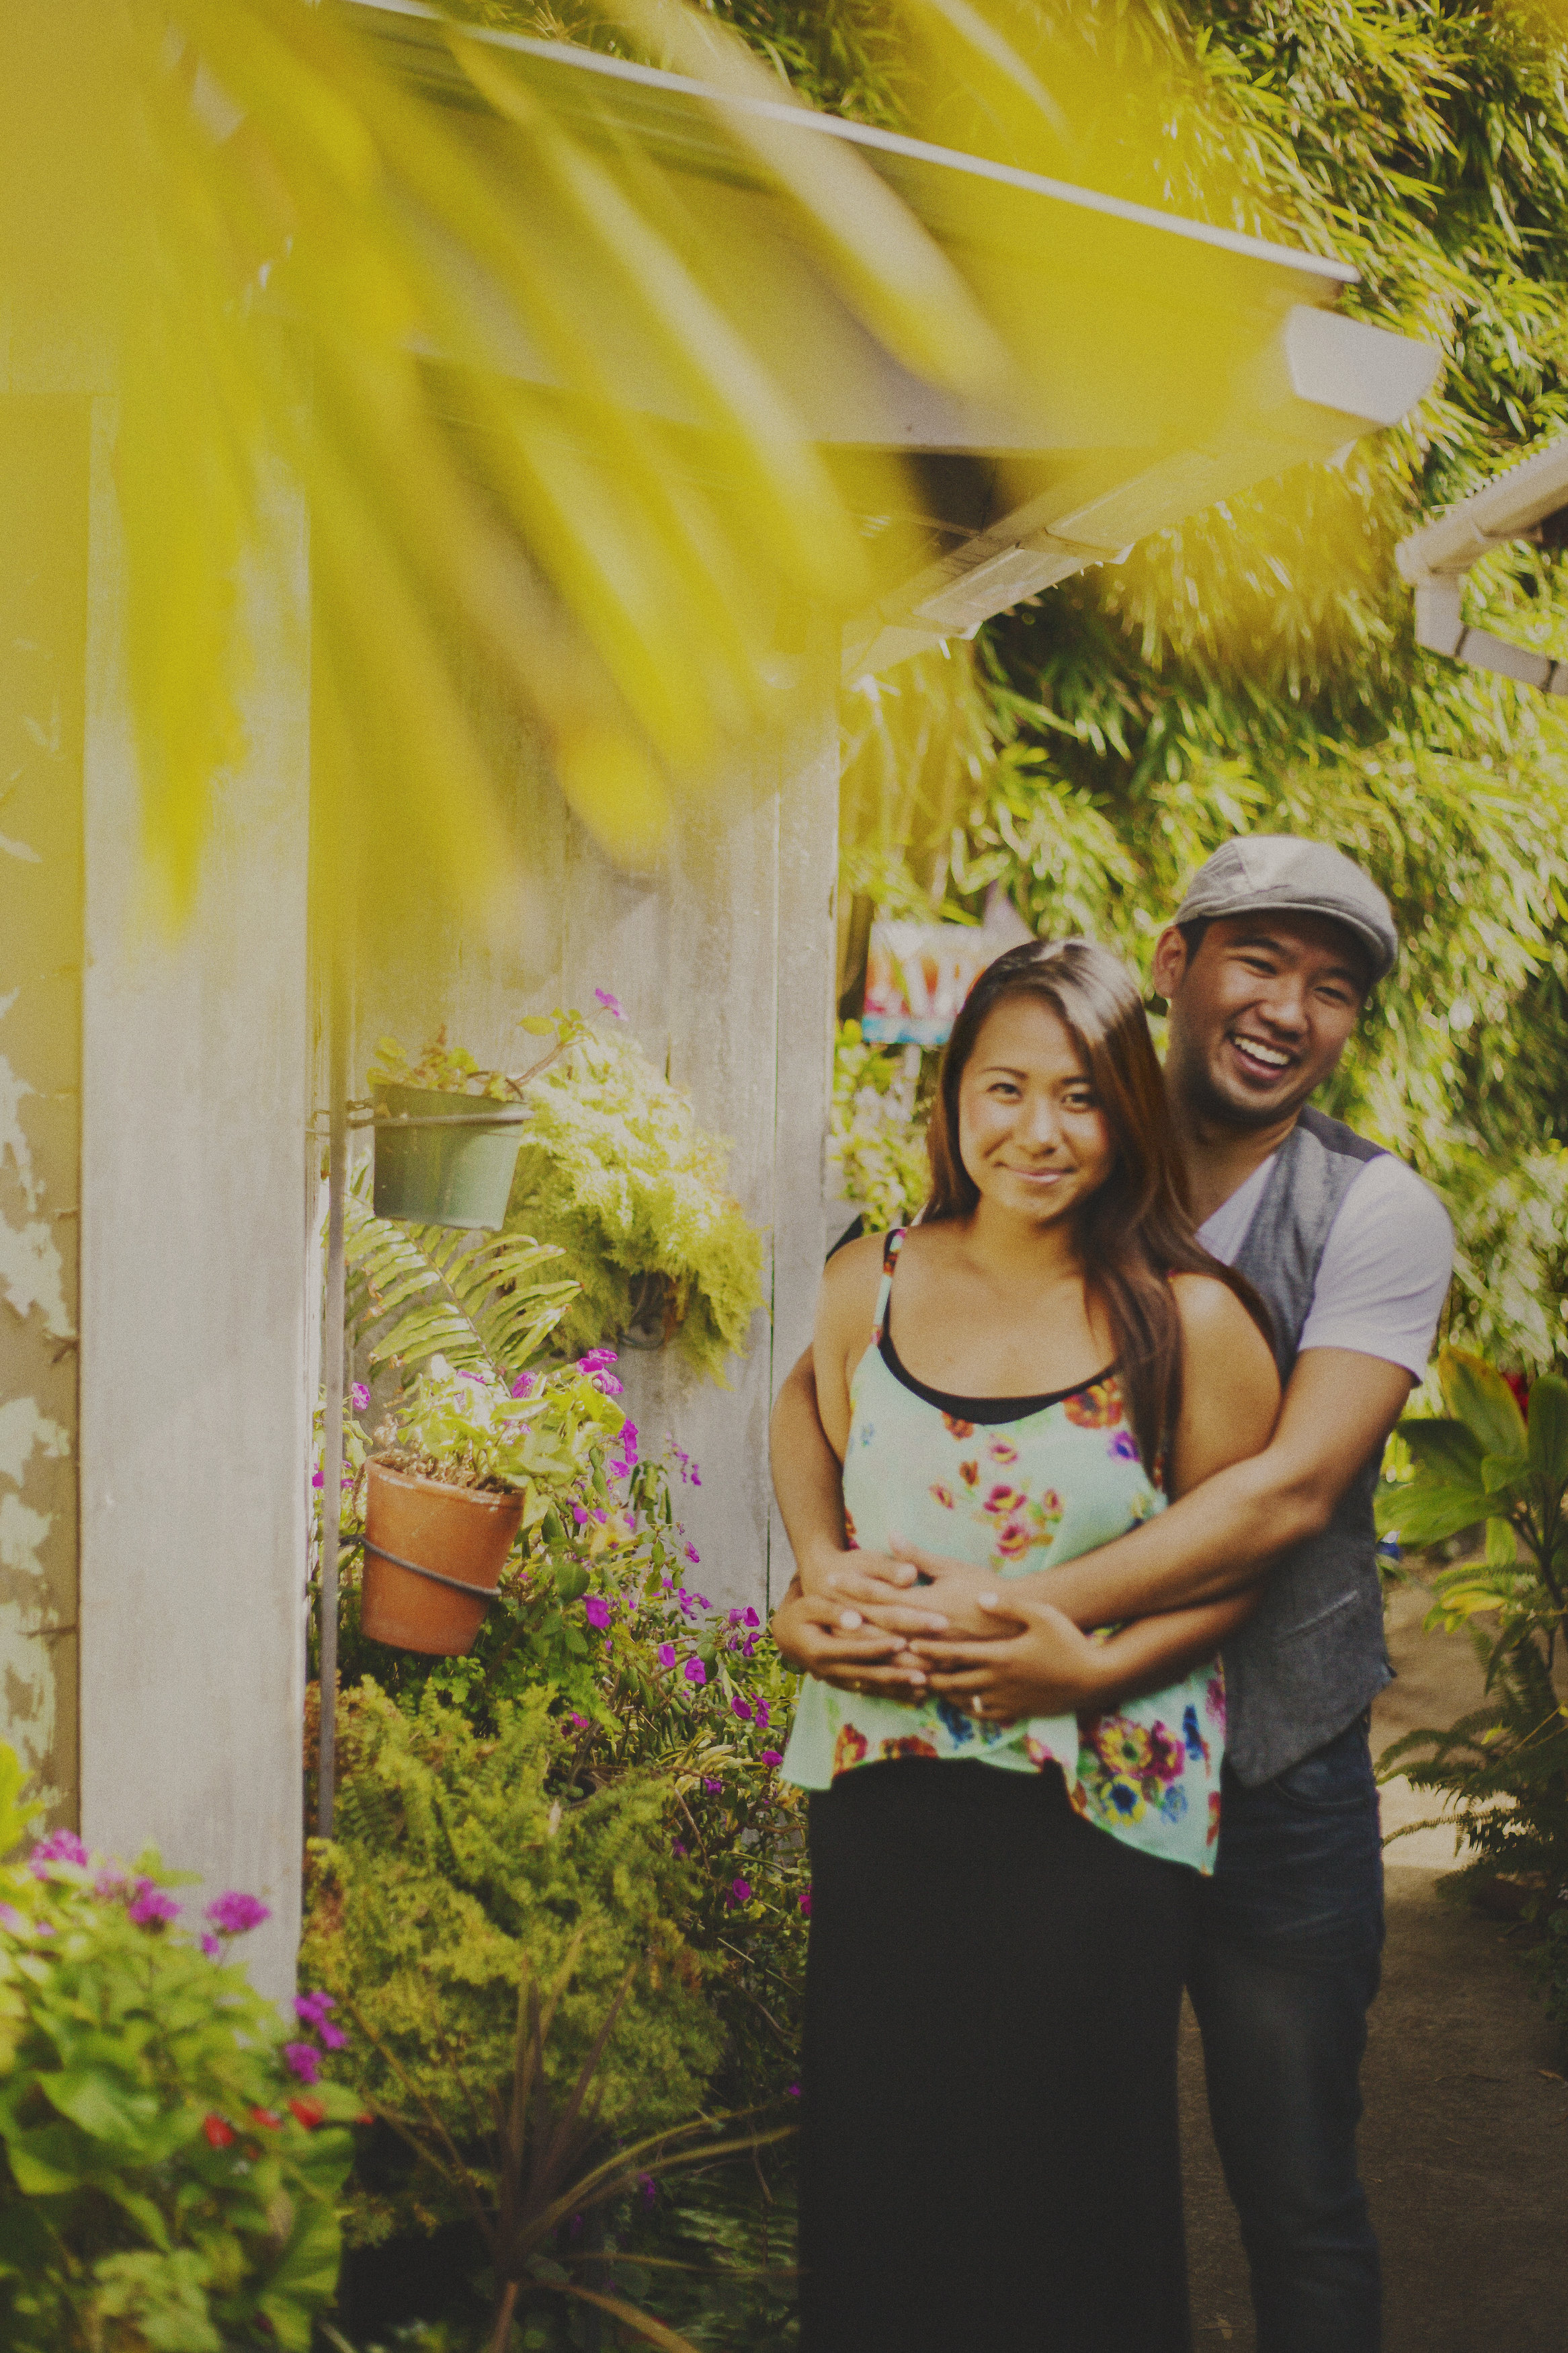 angie-diaz-photography-maui-upcountry-engagement-02.jpg